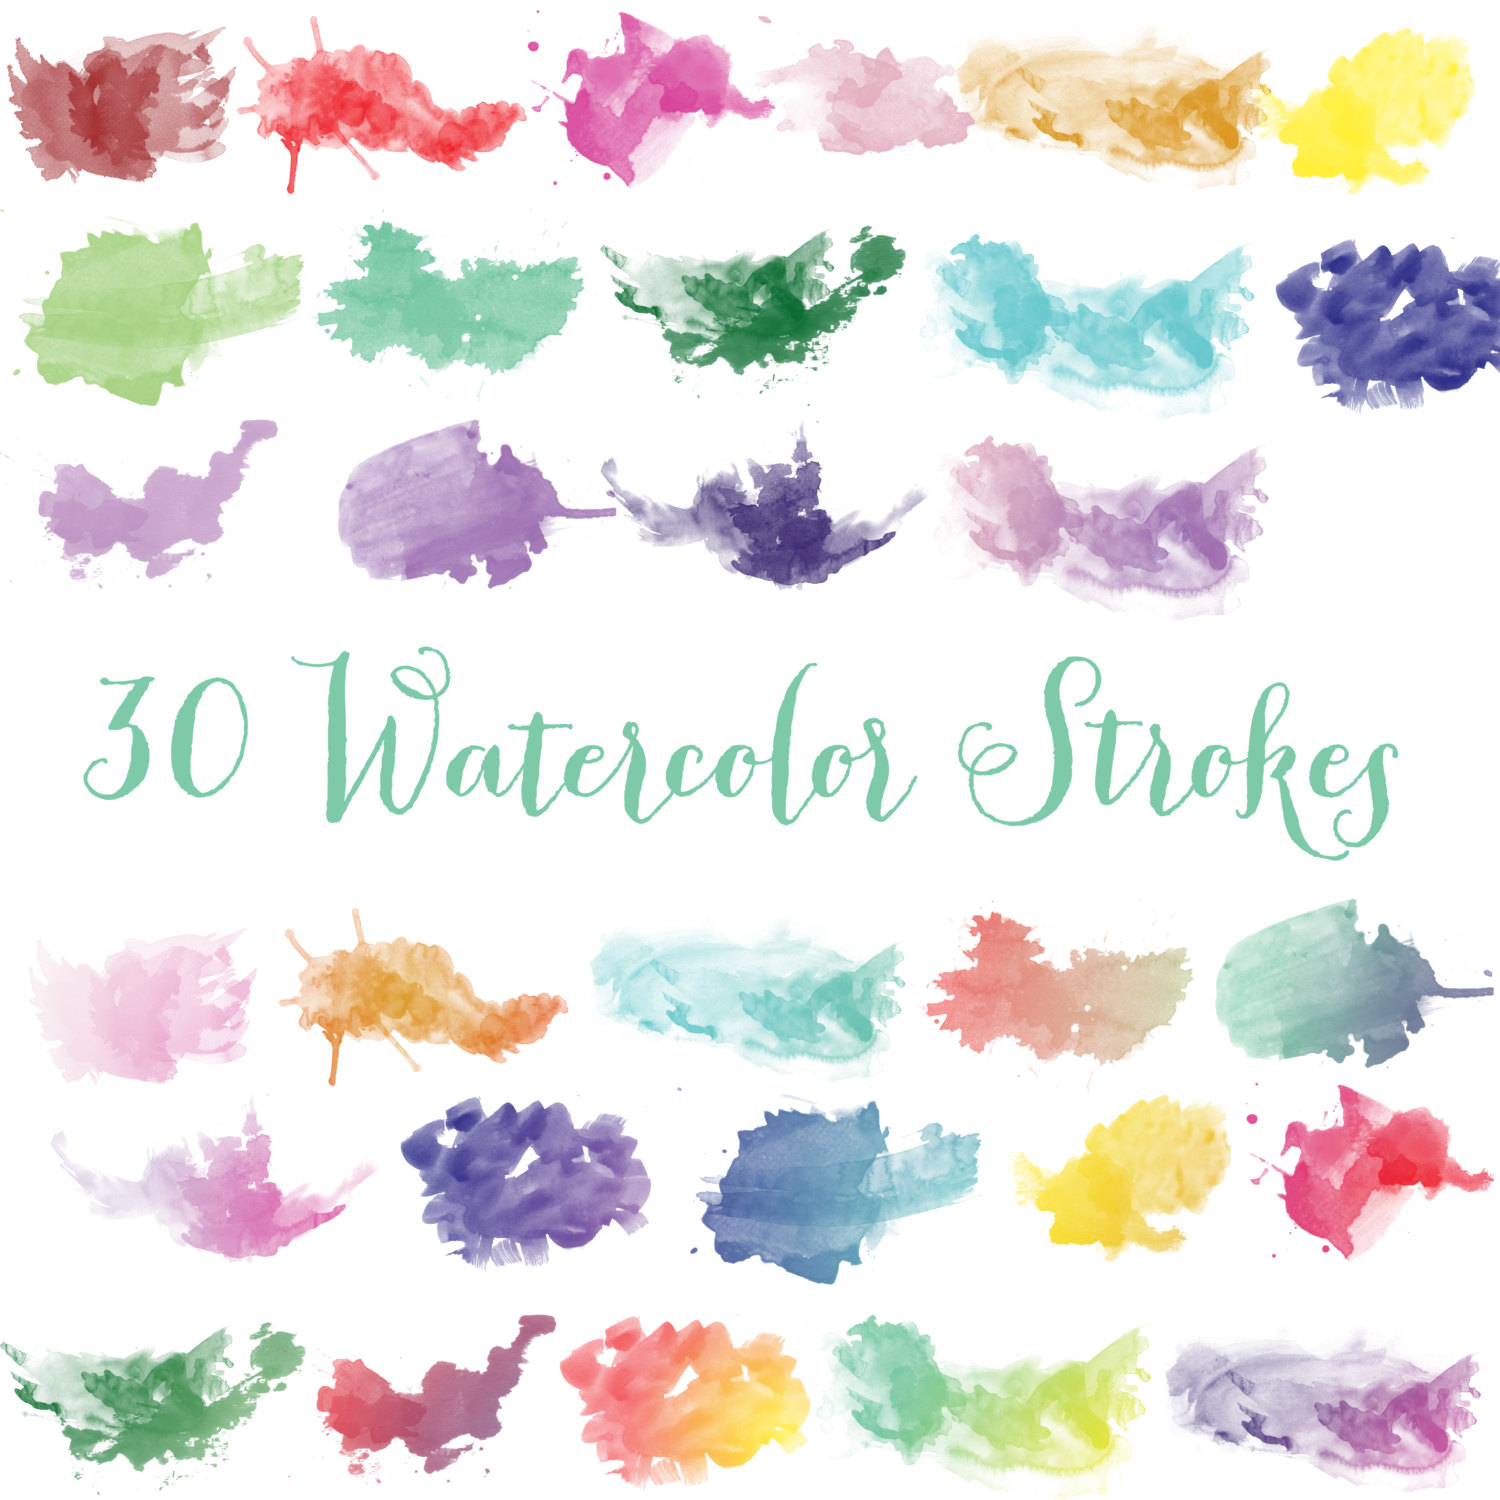 Watercolor clipart png vector black and white stock 1000+ images about gotta watercolor the world on Pinterest ... vector black and white stock